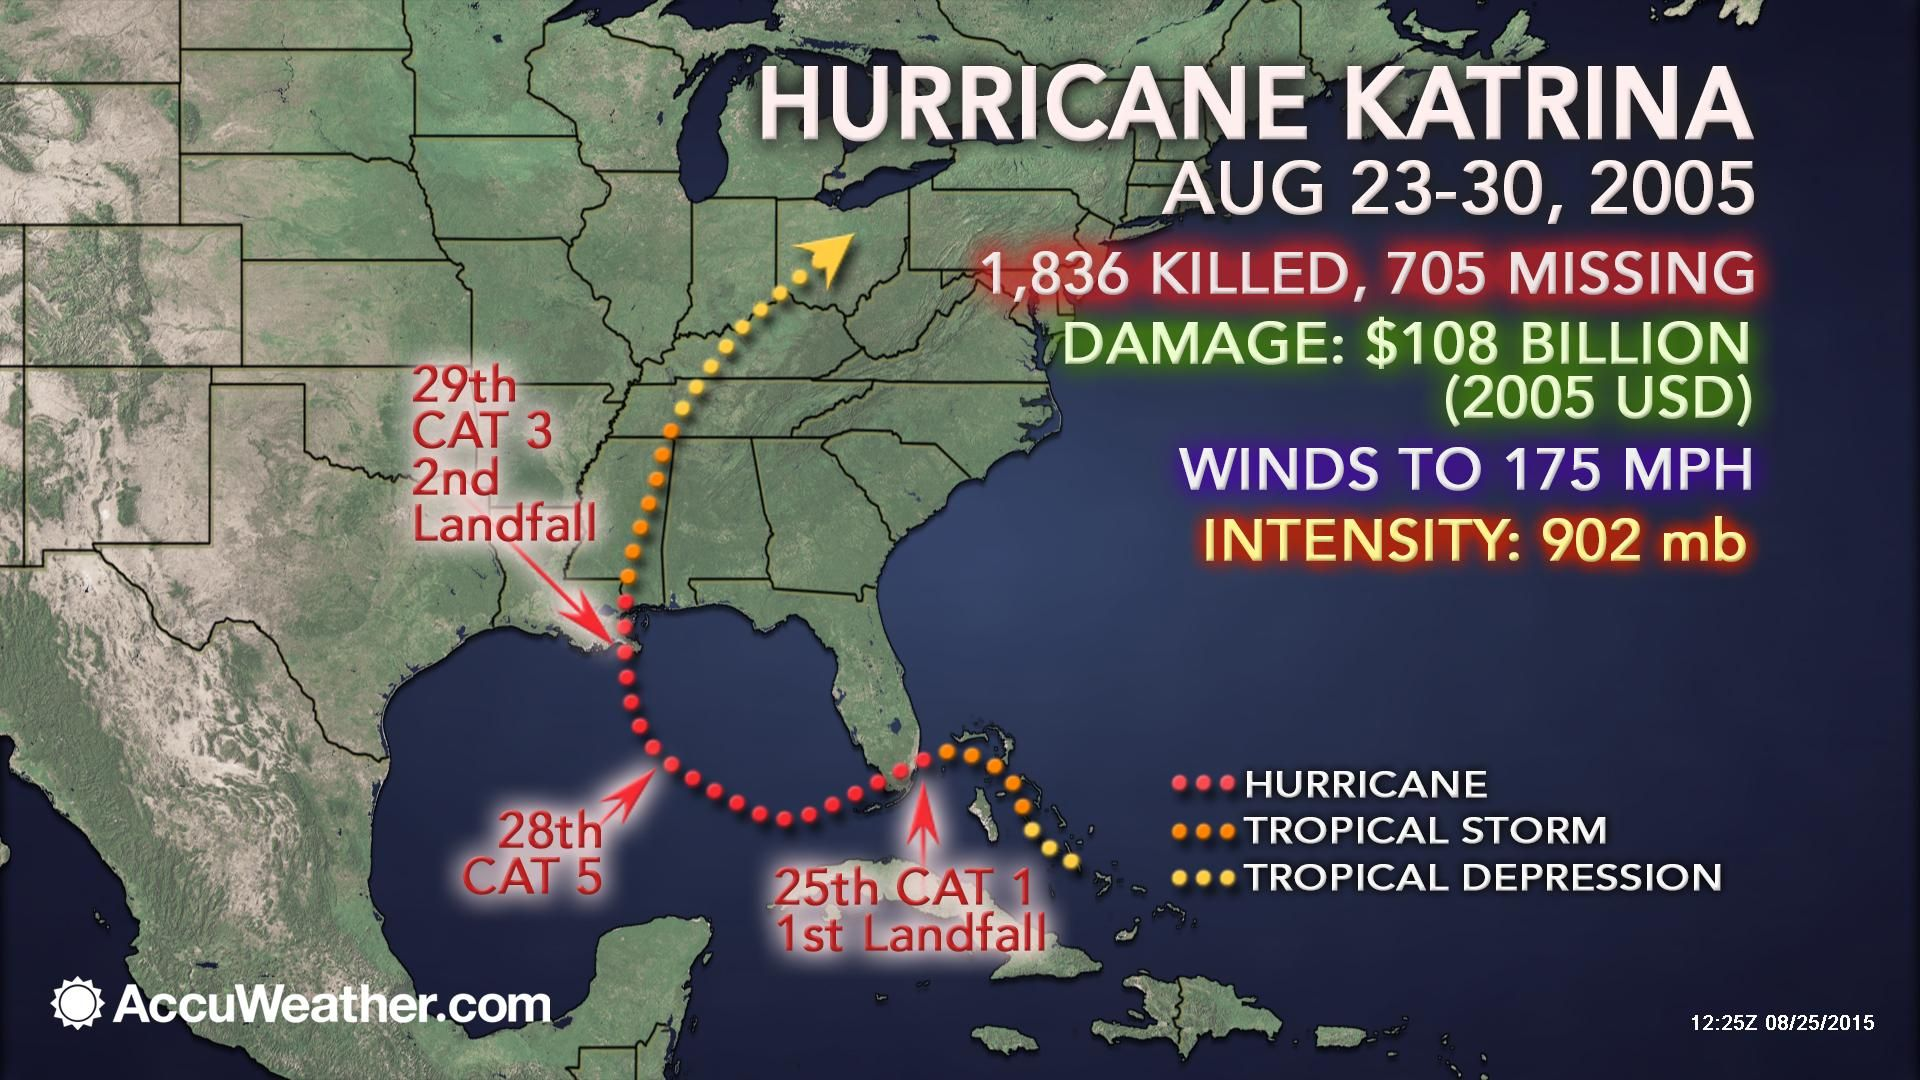 Accuweather Weatherwhys 8 25 2015 On This Date Back In 2005 Hurricane Katrina Made Its Initial U S Landfall Weather News Tropical Storm Hurricane Katrina